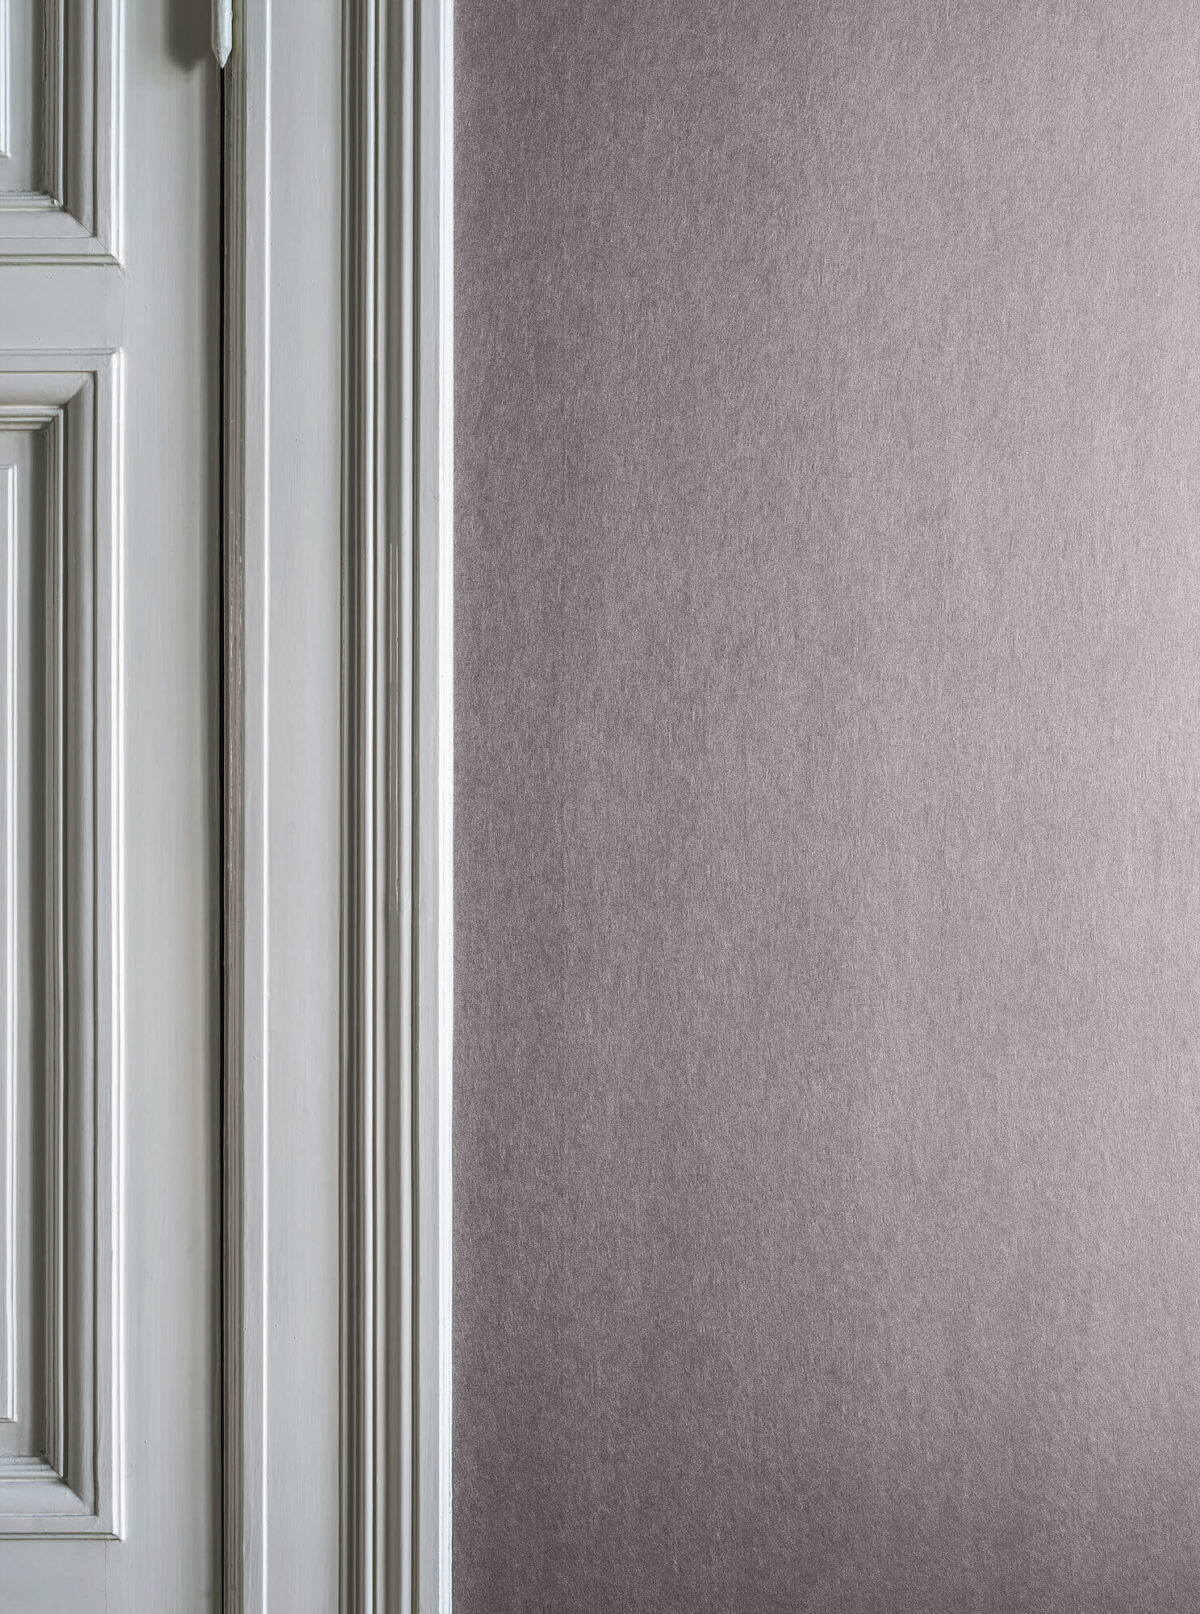 Mix Metallic Second Edition - Dusty Lilac - 4876 -